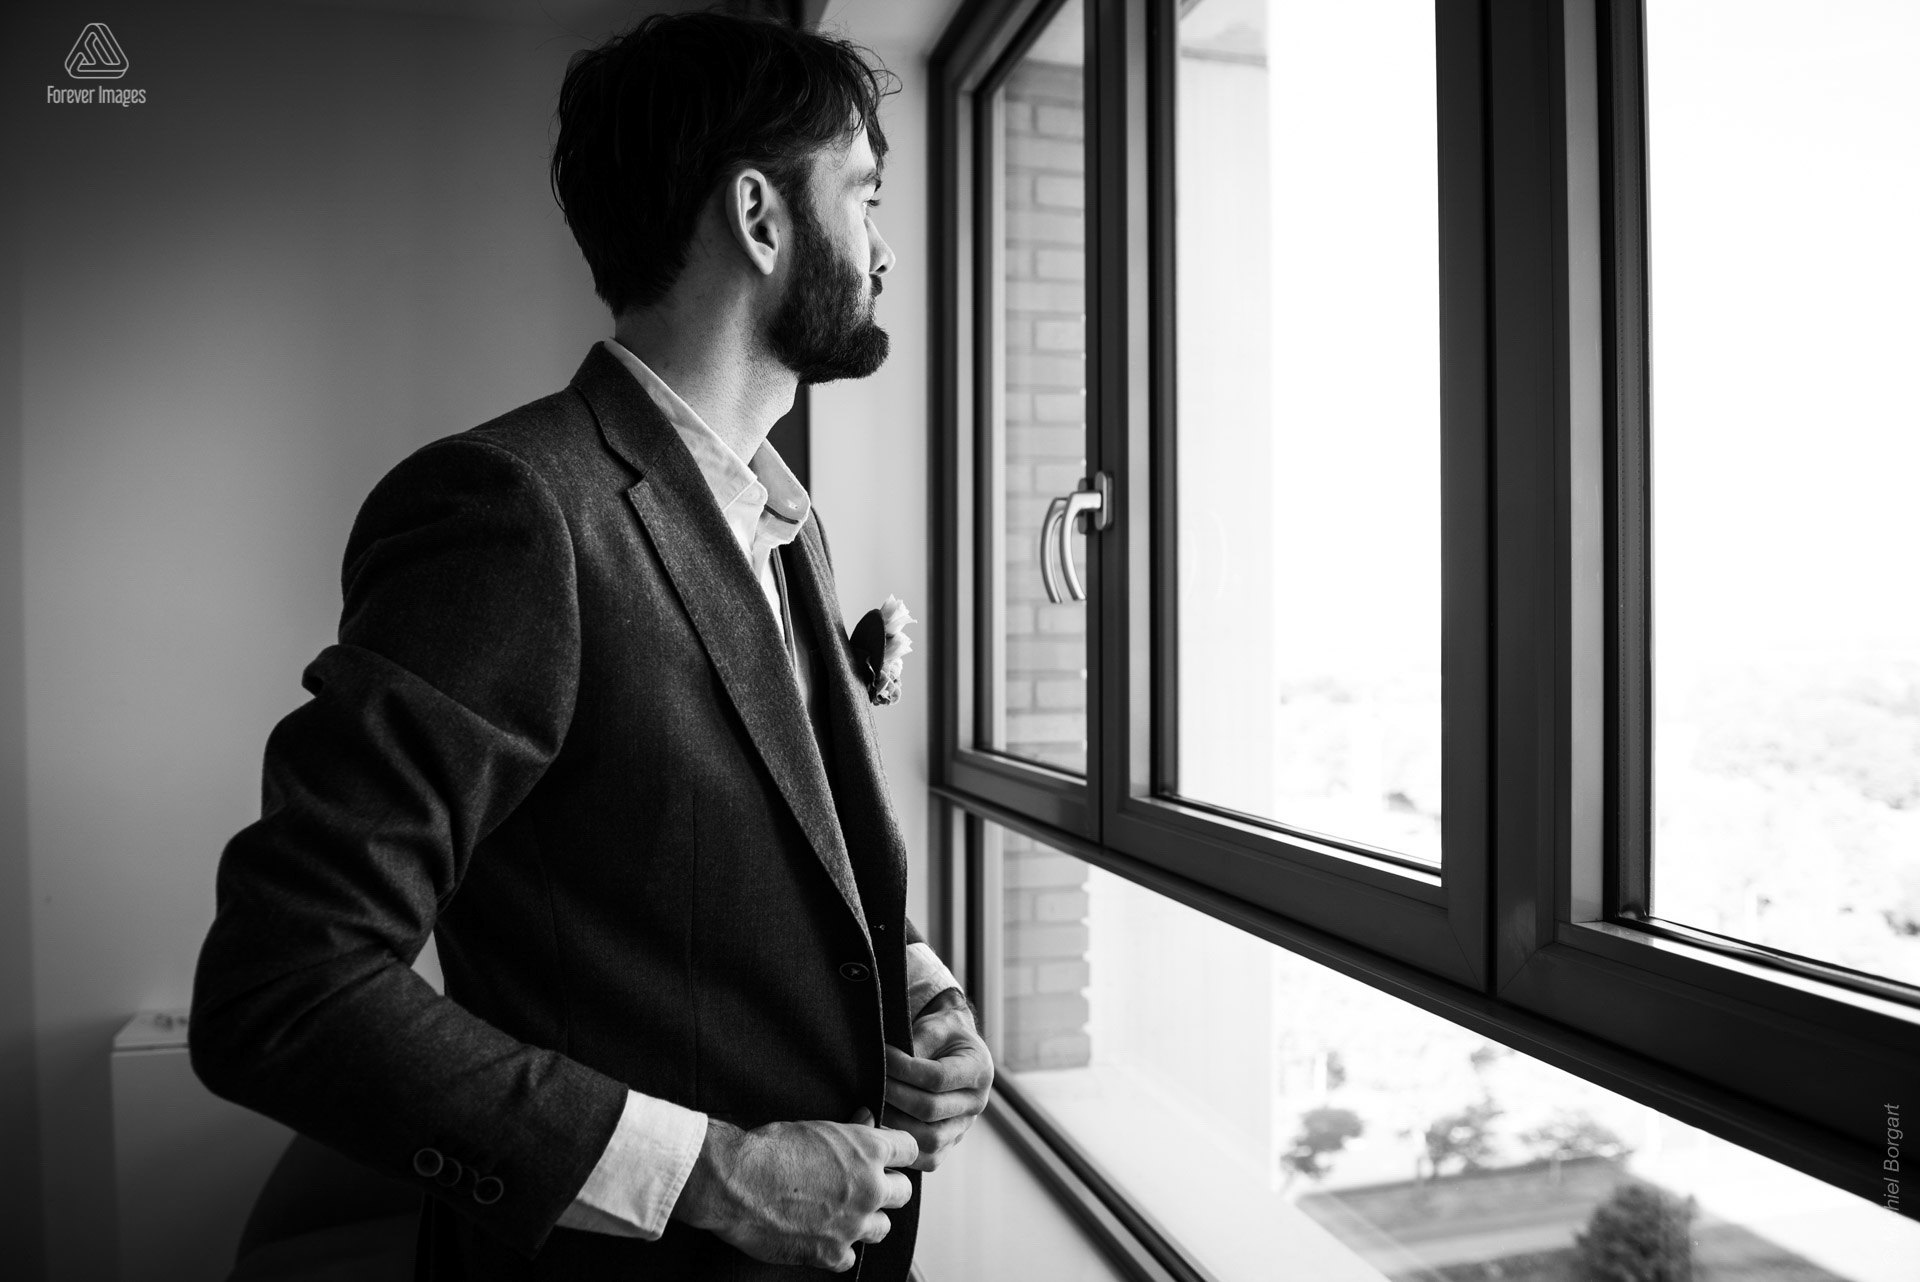 Wedding photo black and white groom on his own | Wedding Photographer Michiel Borgart - Forever Images.